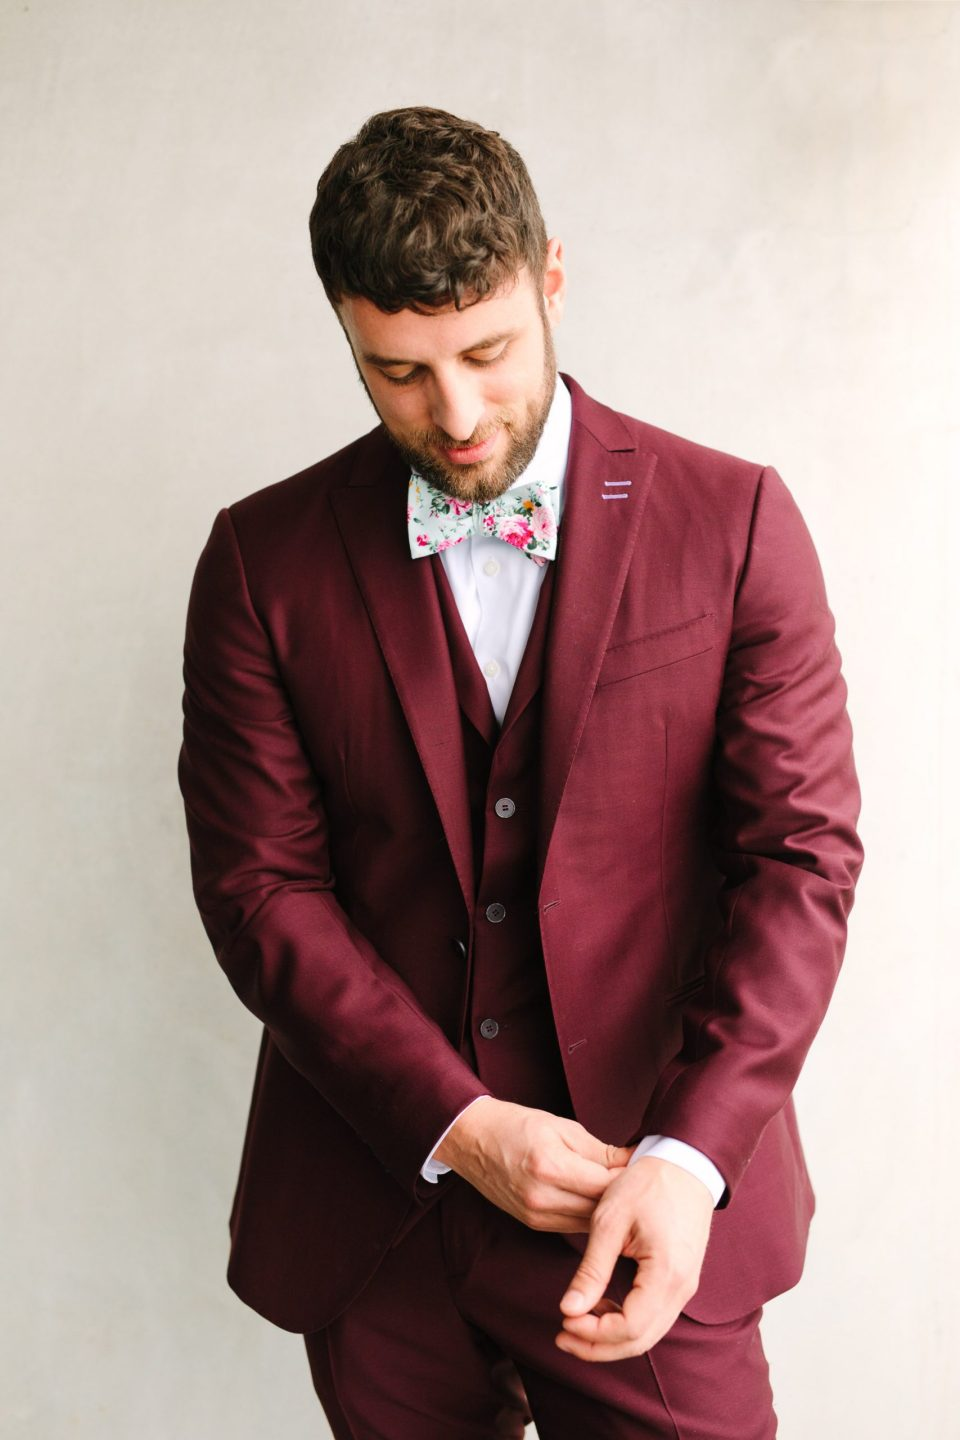 Groom getting ready in burgundy tux by Groom getting ready in emerald tux by Mary Costa Photography